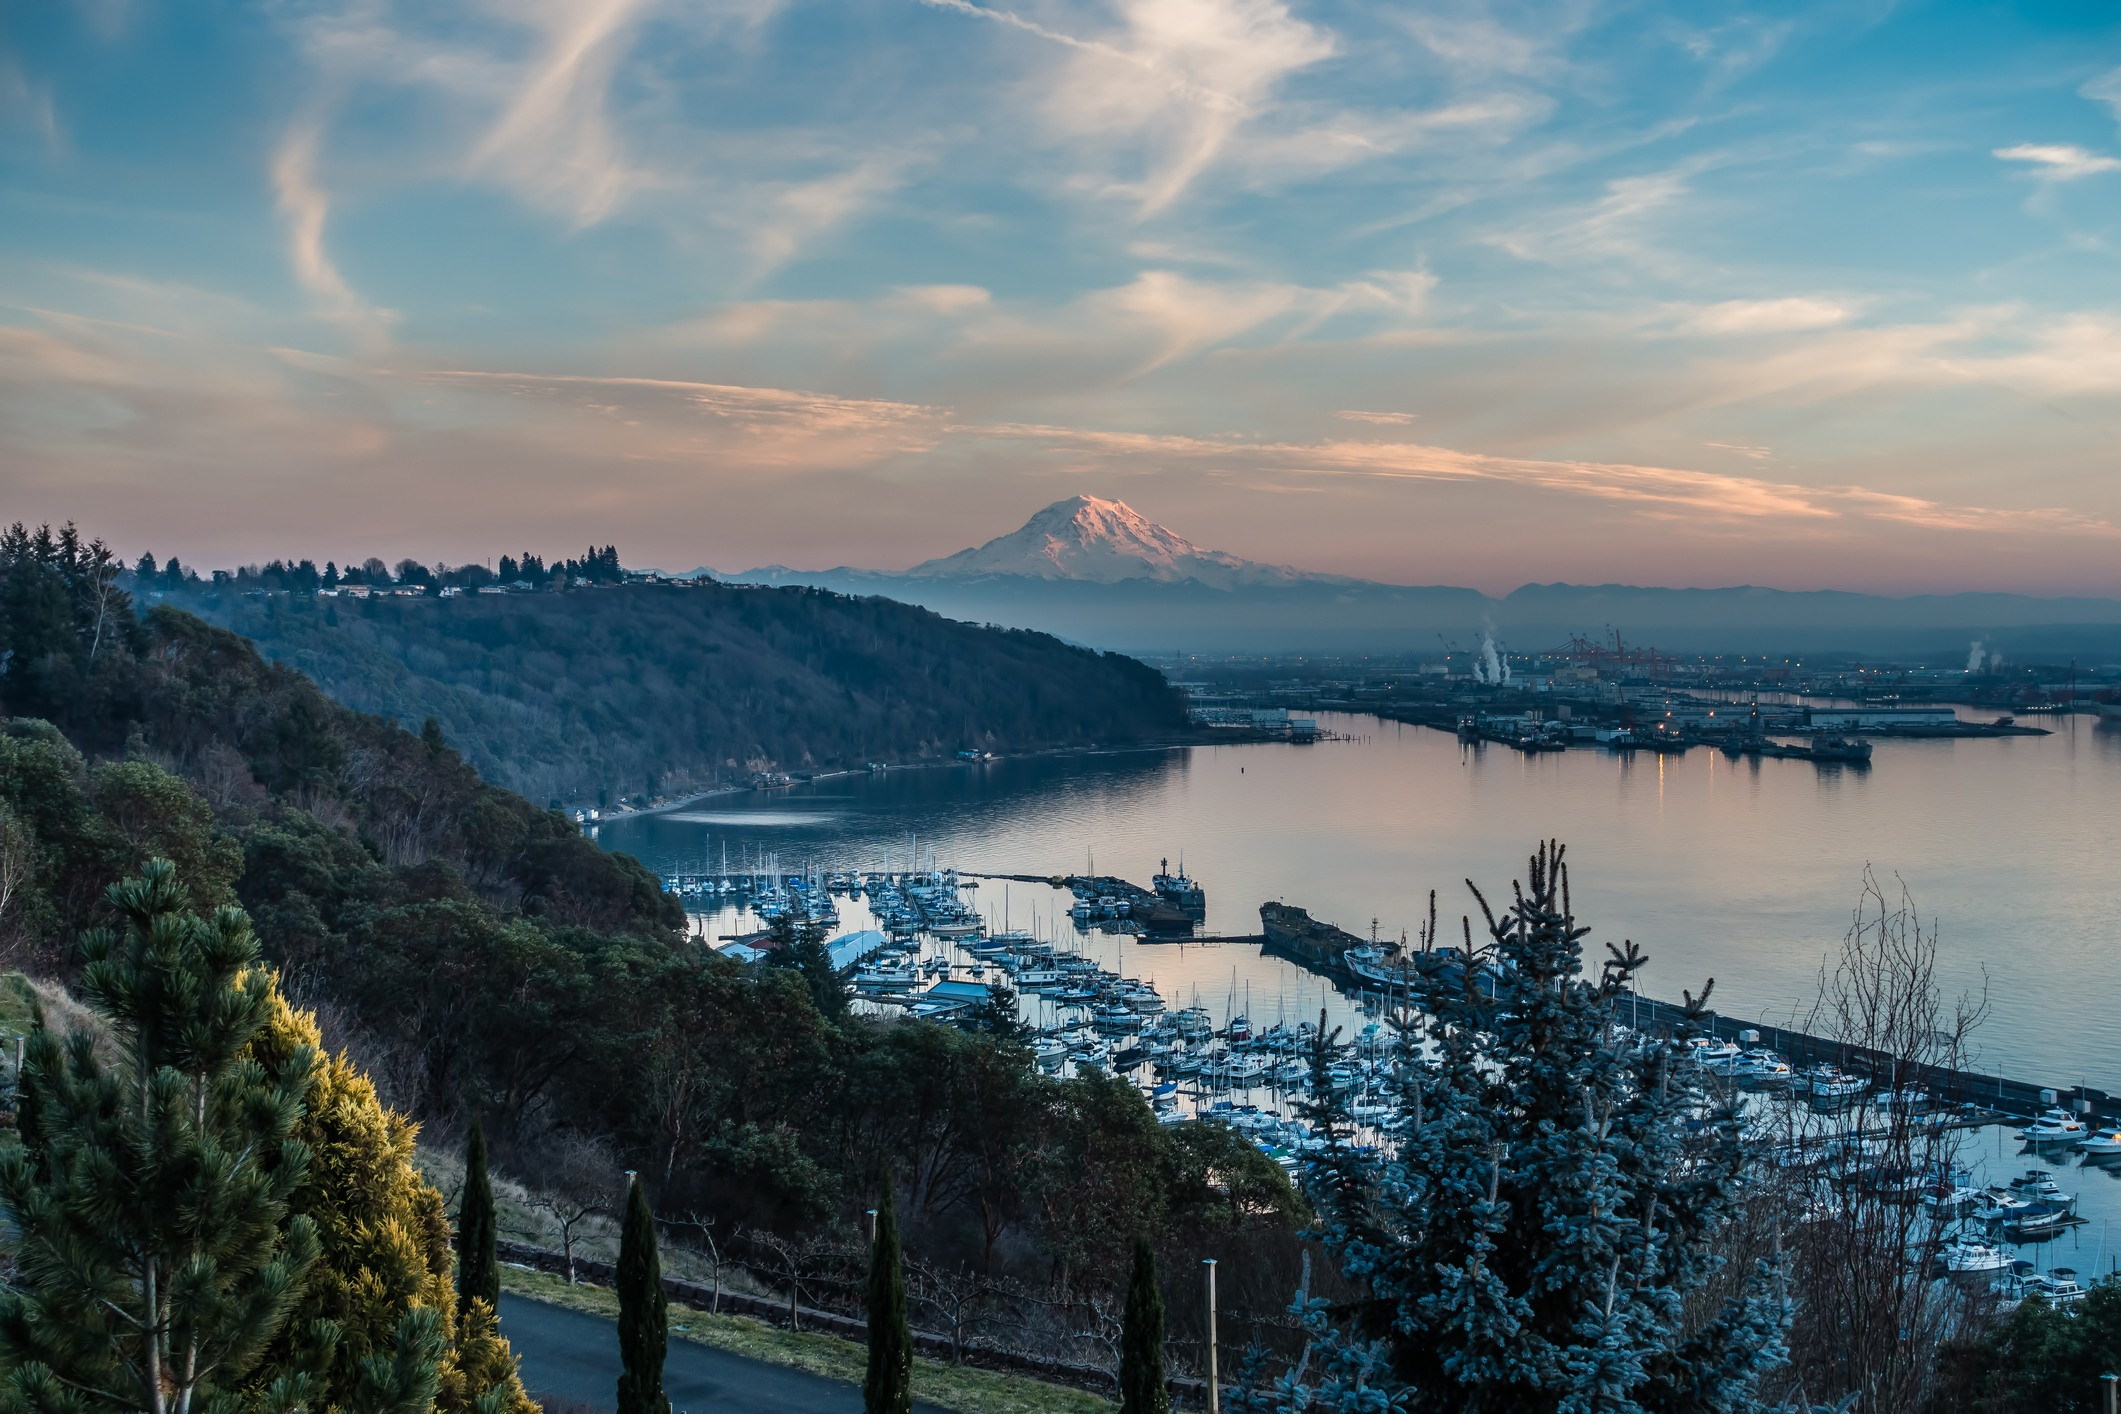 Tacoma Washington and Mount Rainier